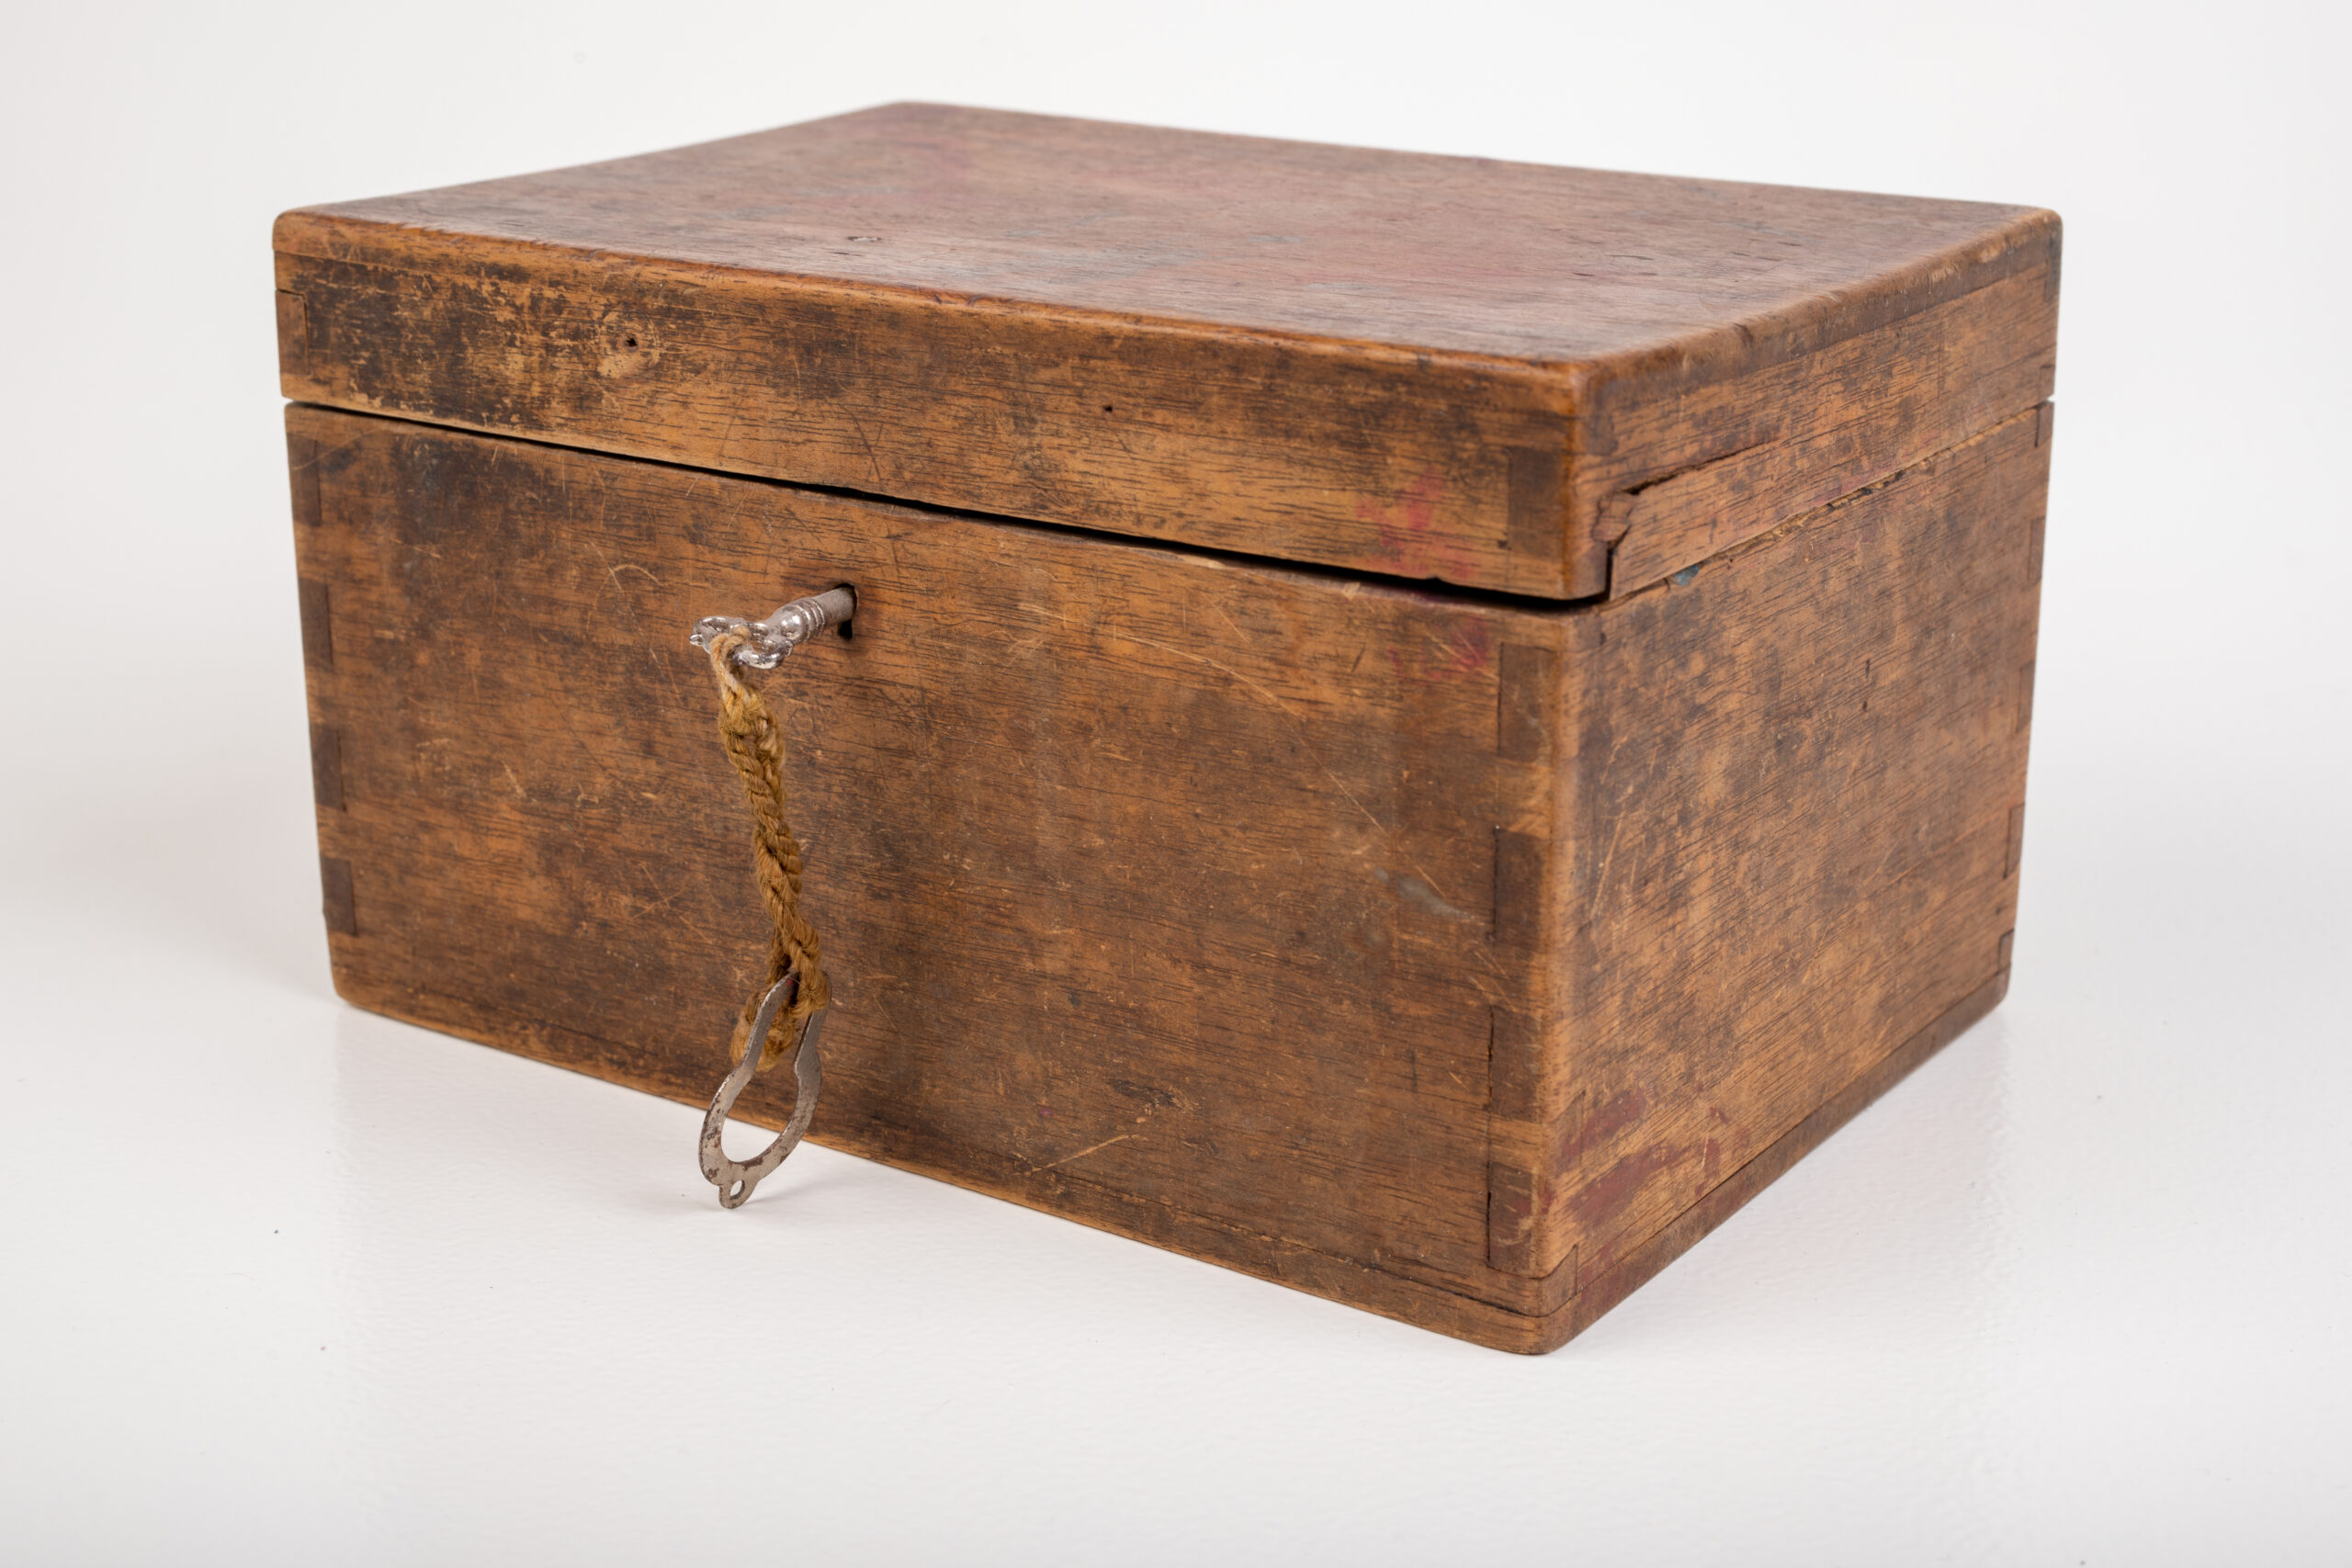 Old wooden case and small key. A mysterious wooden container. Light background.